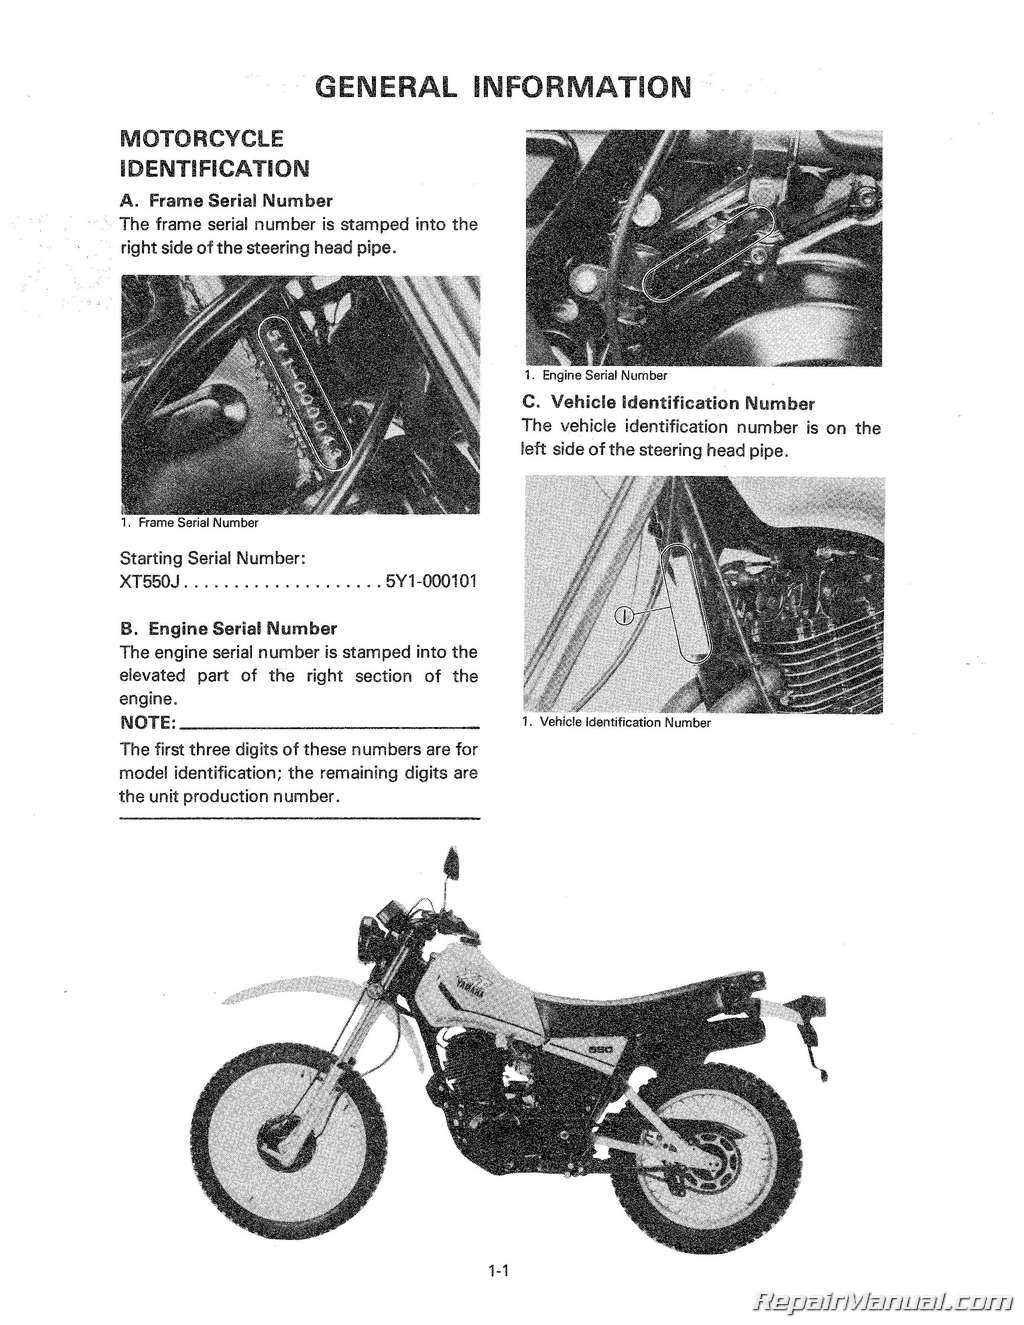 1982 yamaha xt550 motorcycle service repair maintenance manual